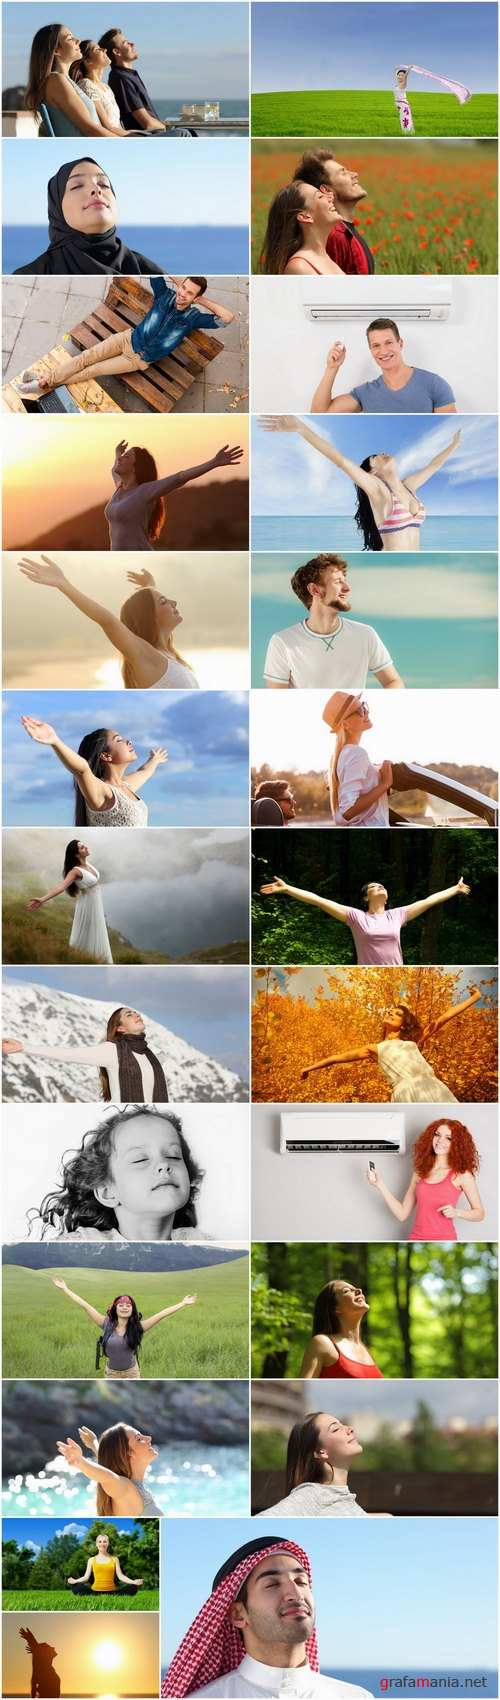 Fresh air breathing relaxation nature man woman 25 HQ Jpeg